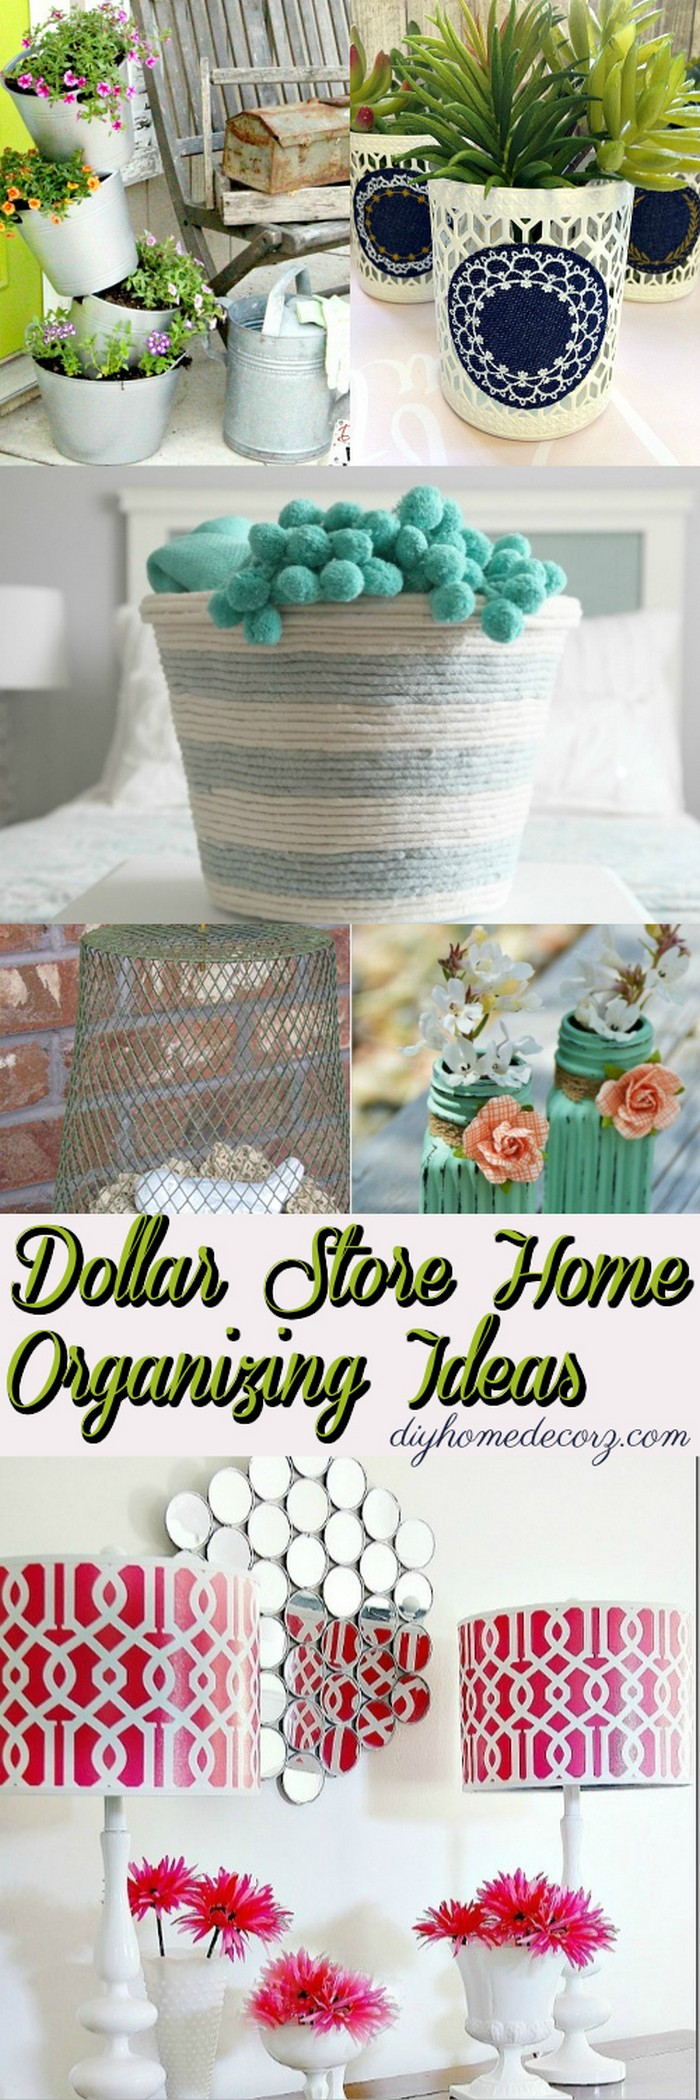 Dollar Store Home Organizing Ideas 3 Dollar Store Home Organizing Ideas